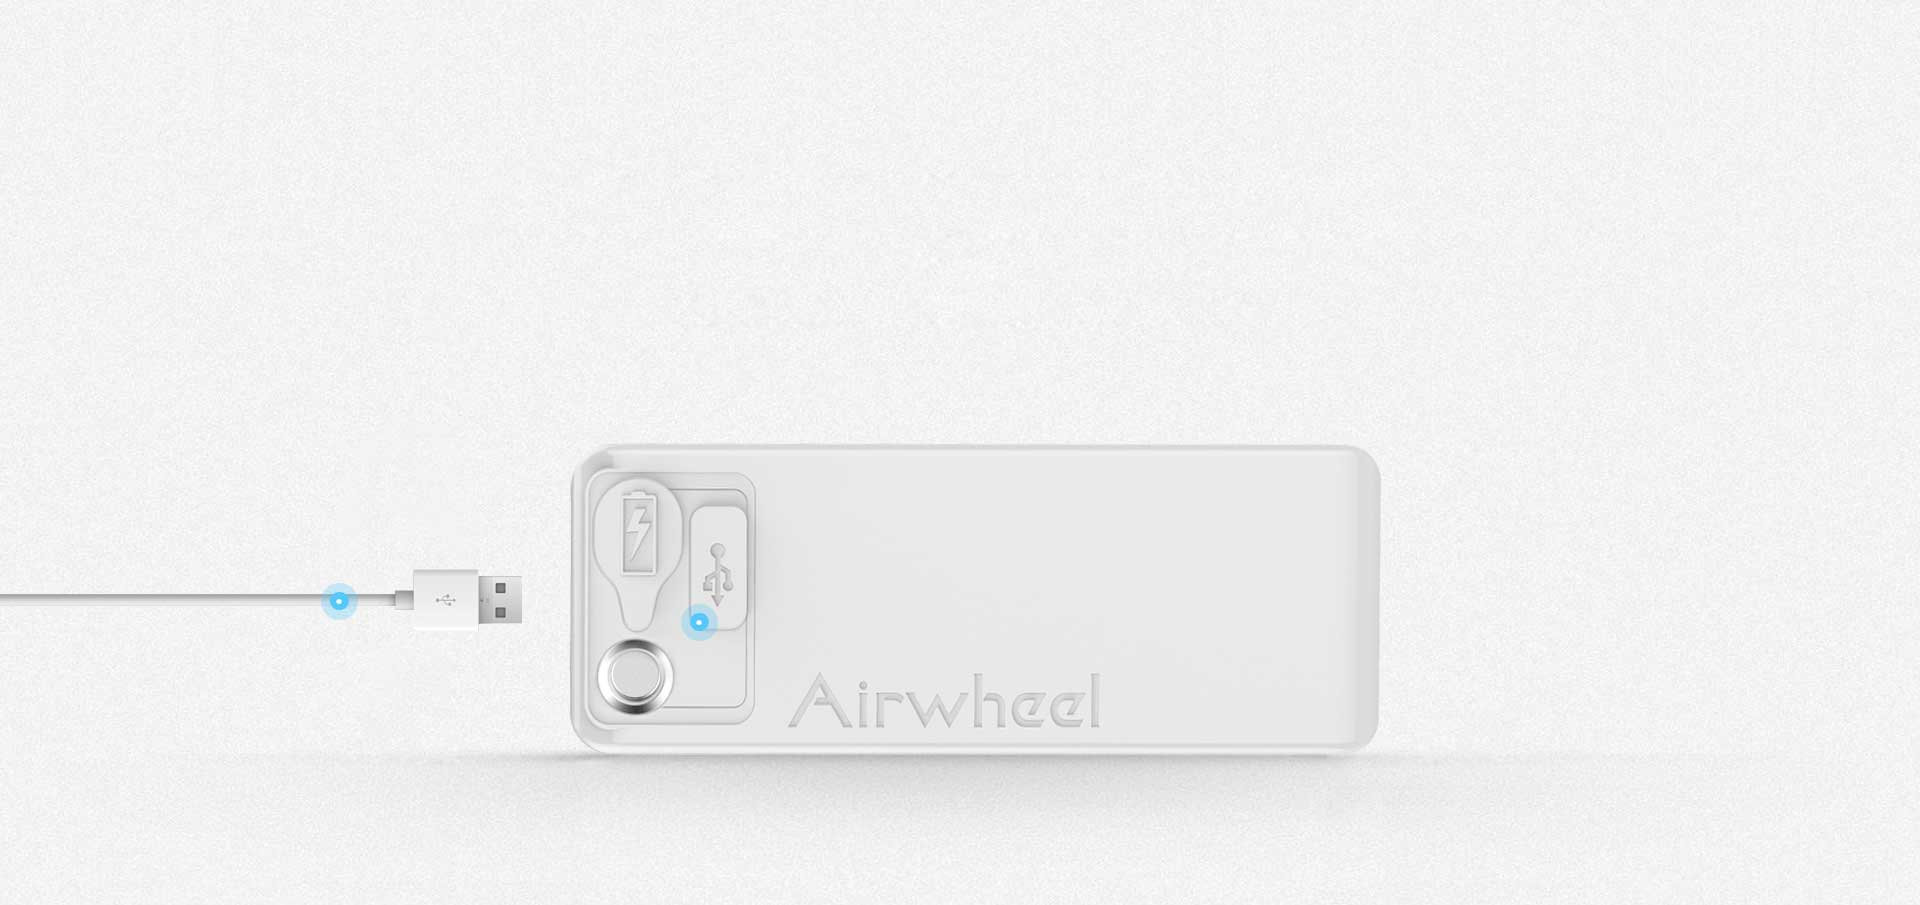 Airwheel battery